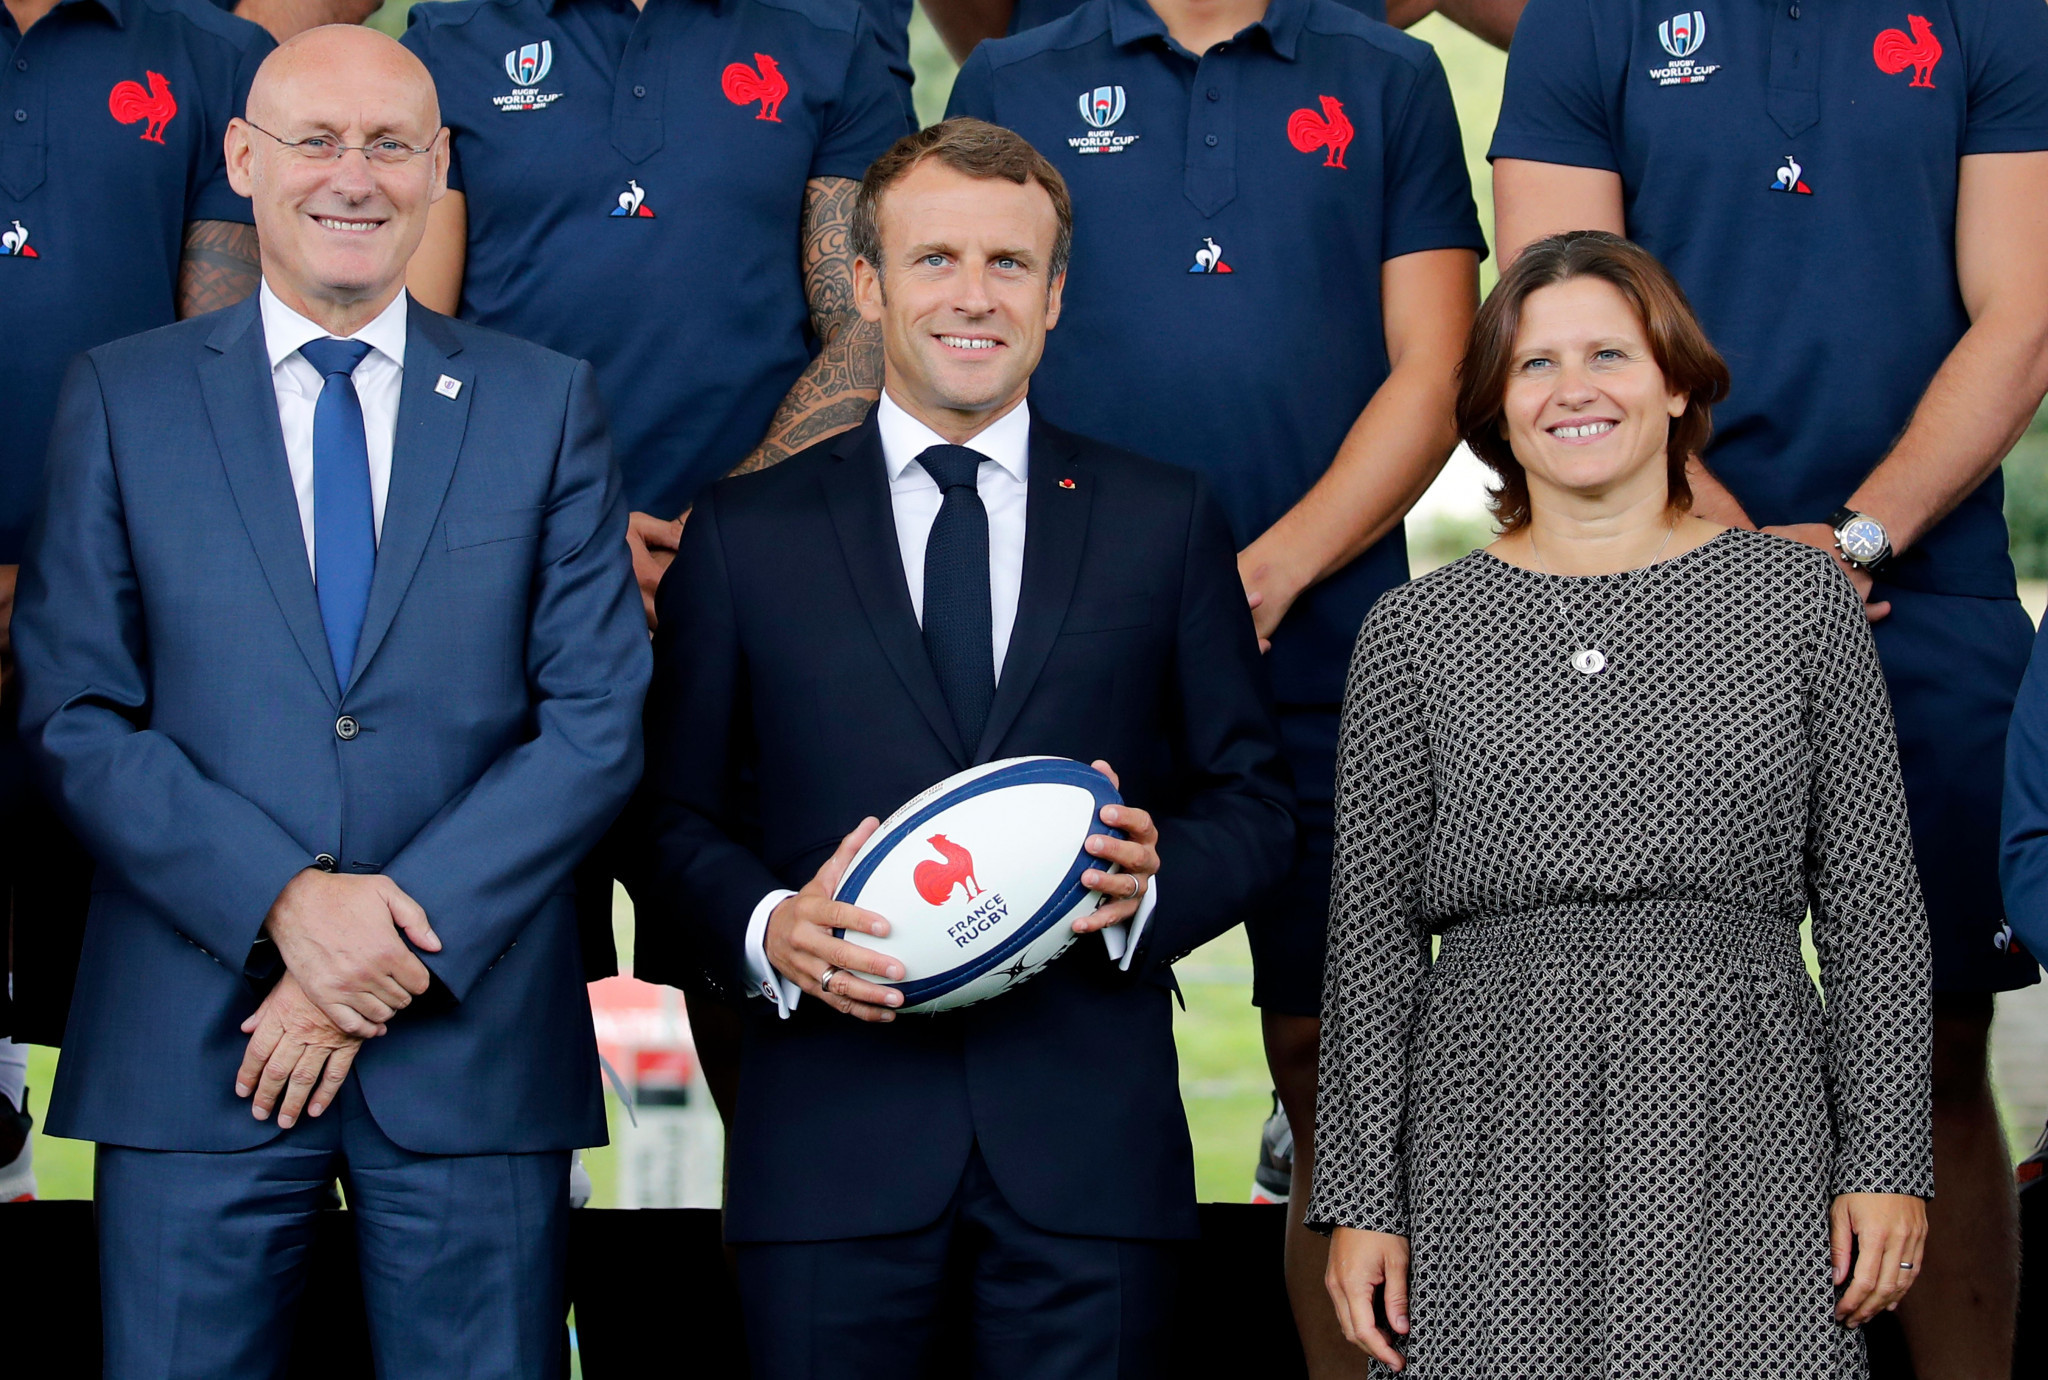 French President Macron to attend 2023 Rugby World Cup draw